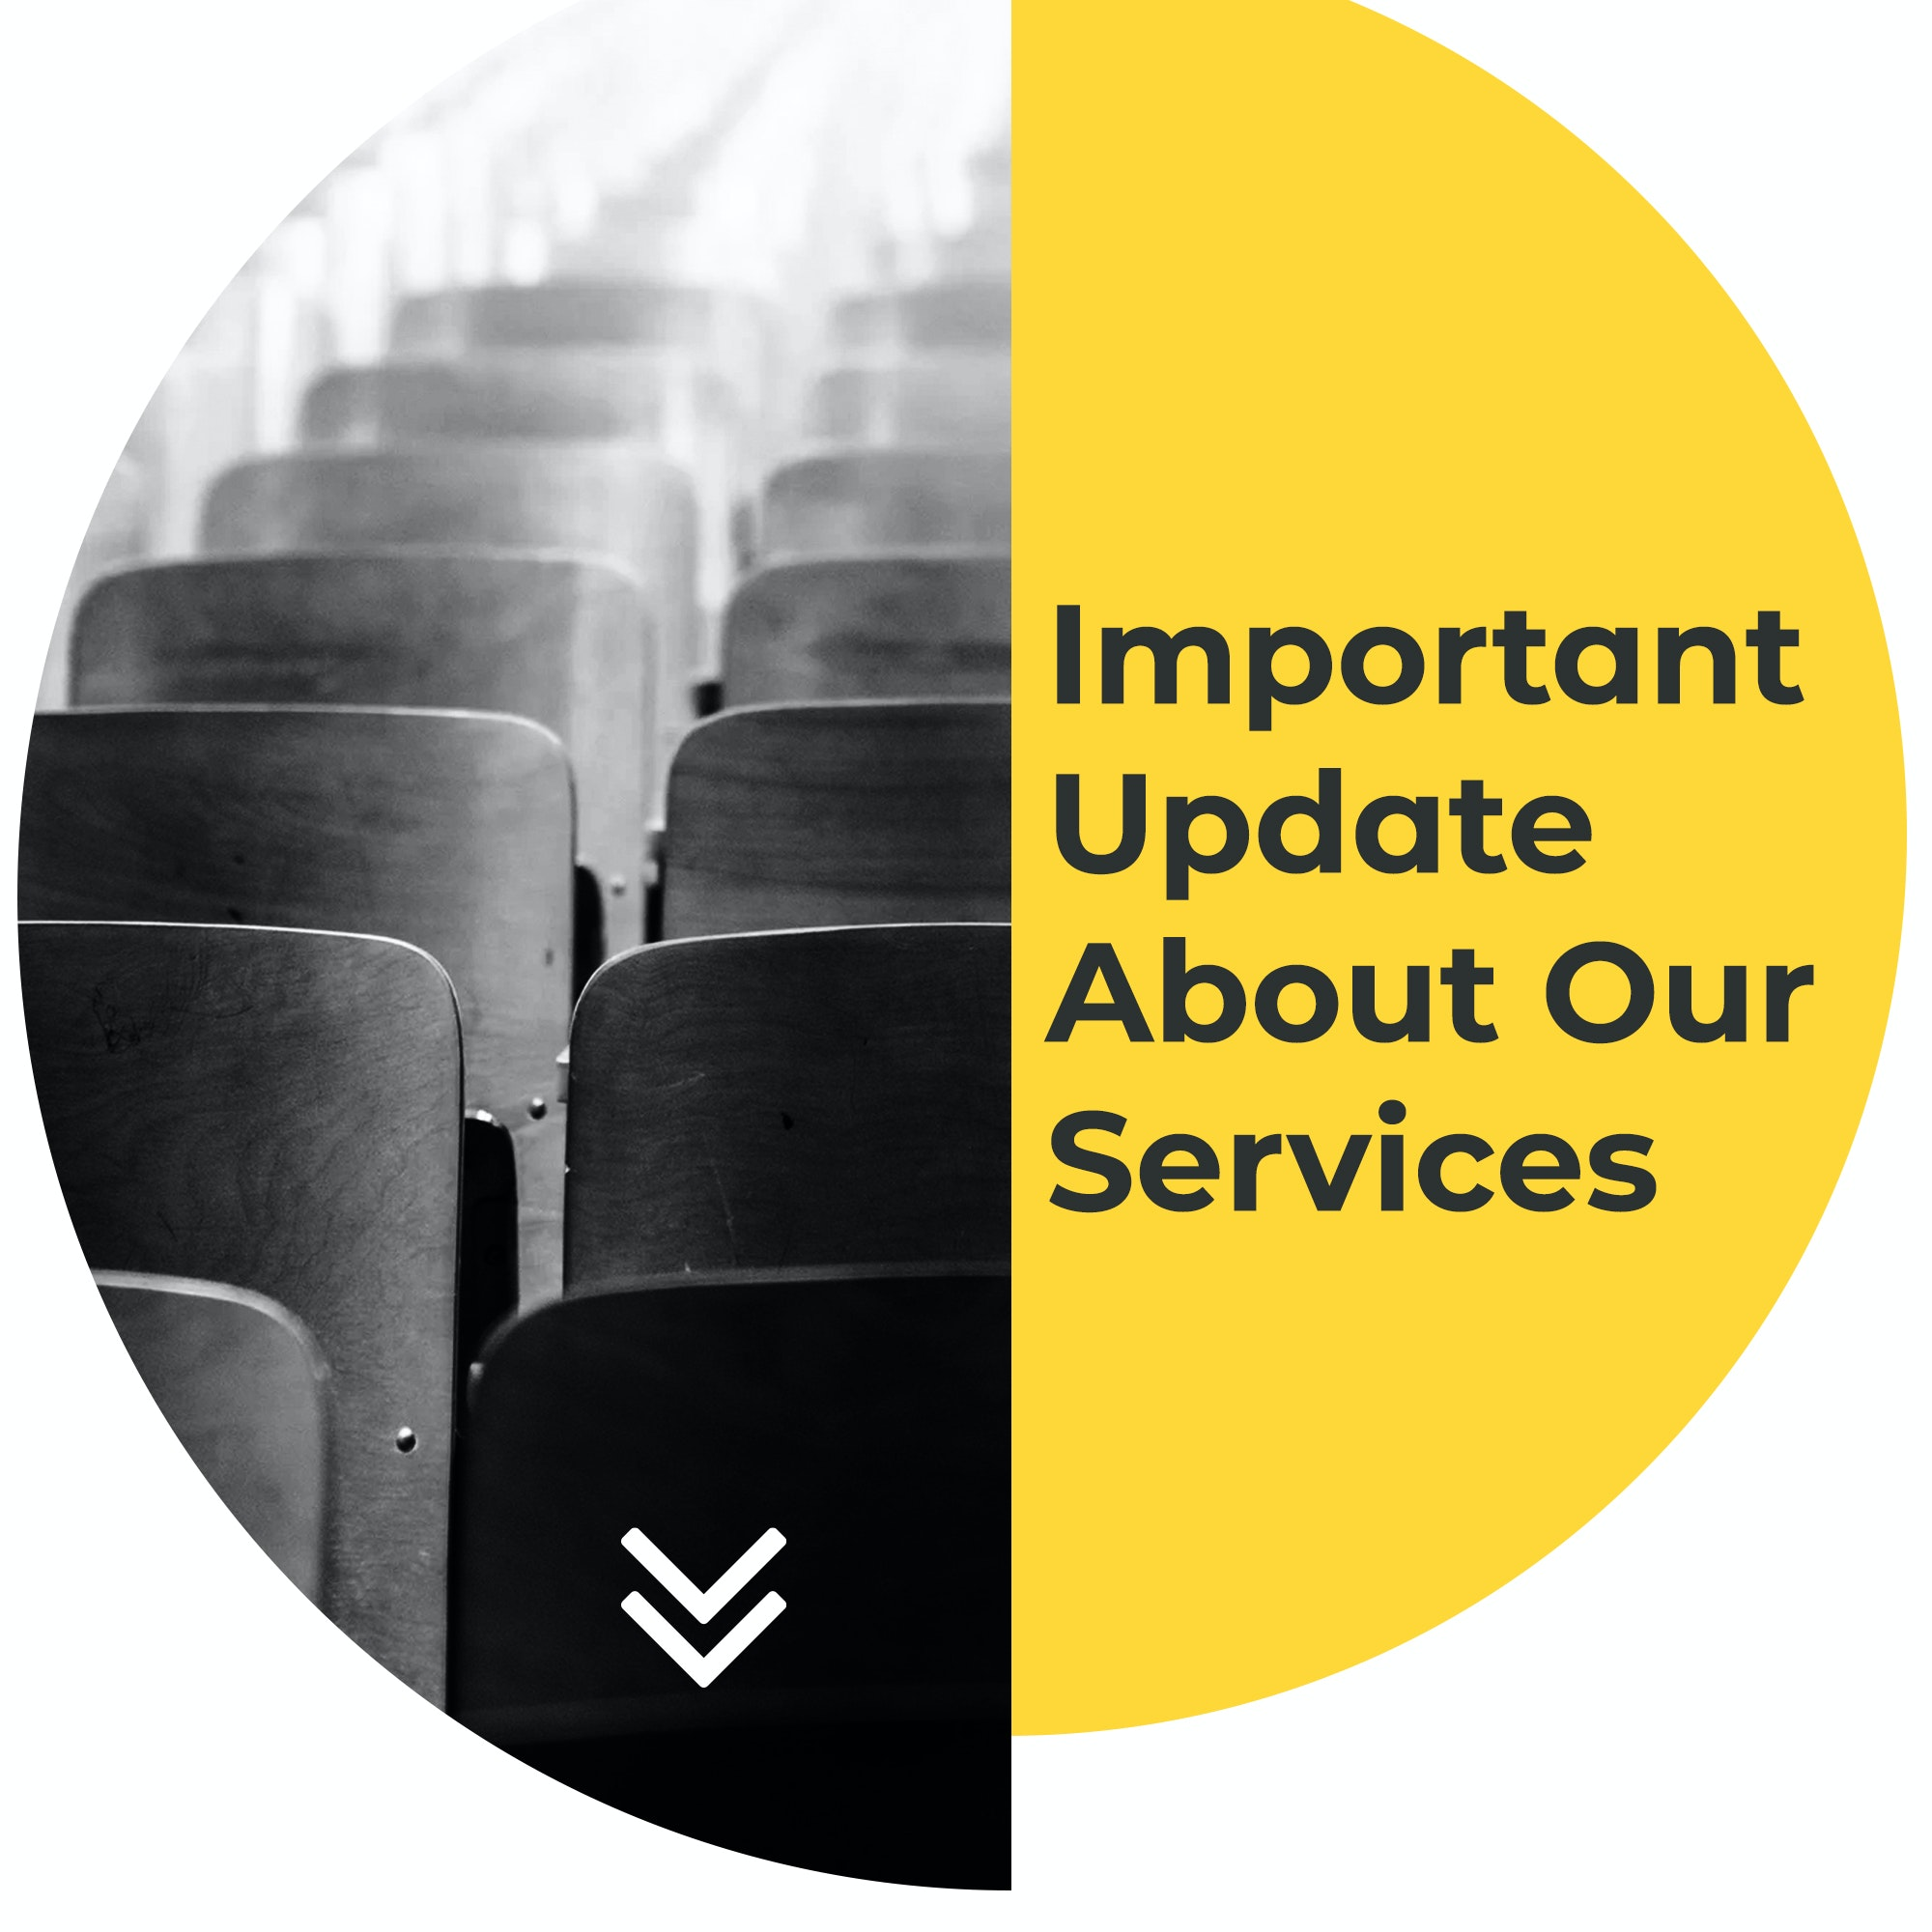 Important Update About Our Services Modern Yellow Circles - Title